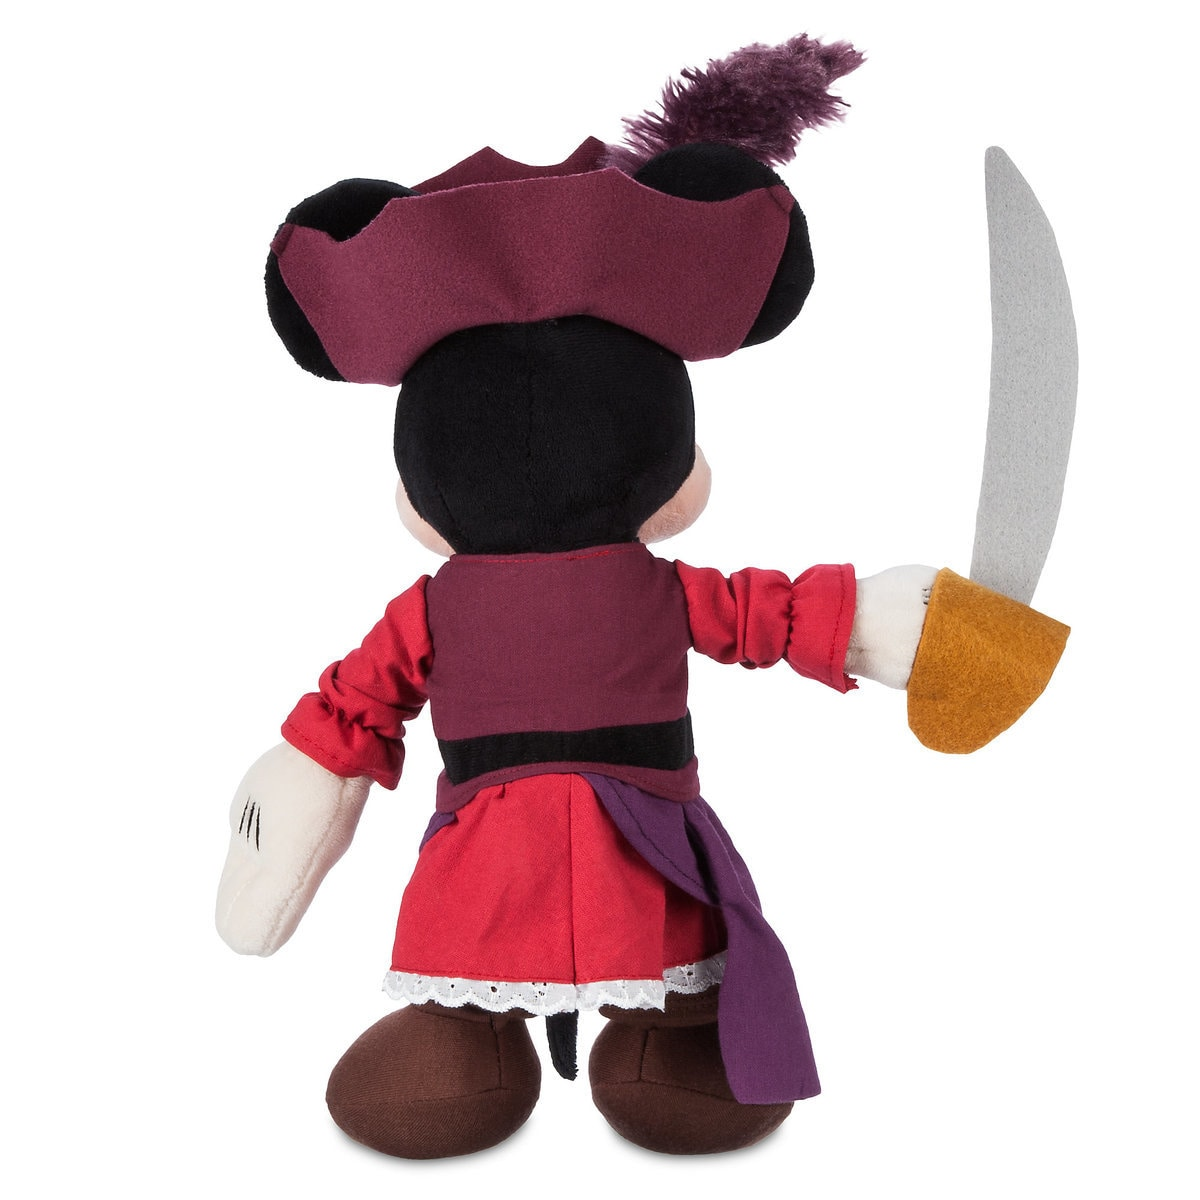 47d266553cad6 Minnie Mouse Plush - Pirates of the Caribbean - Small - 12 ...